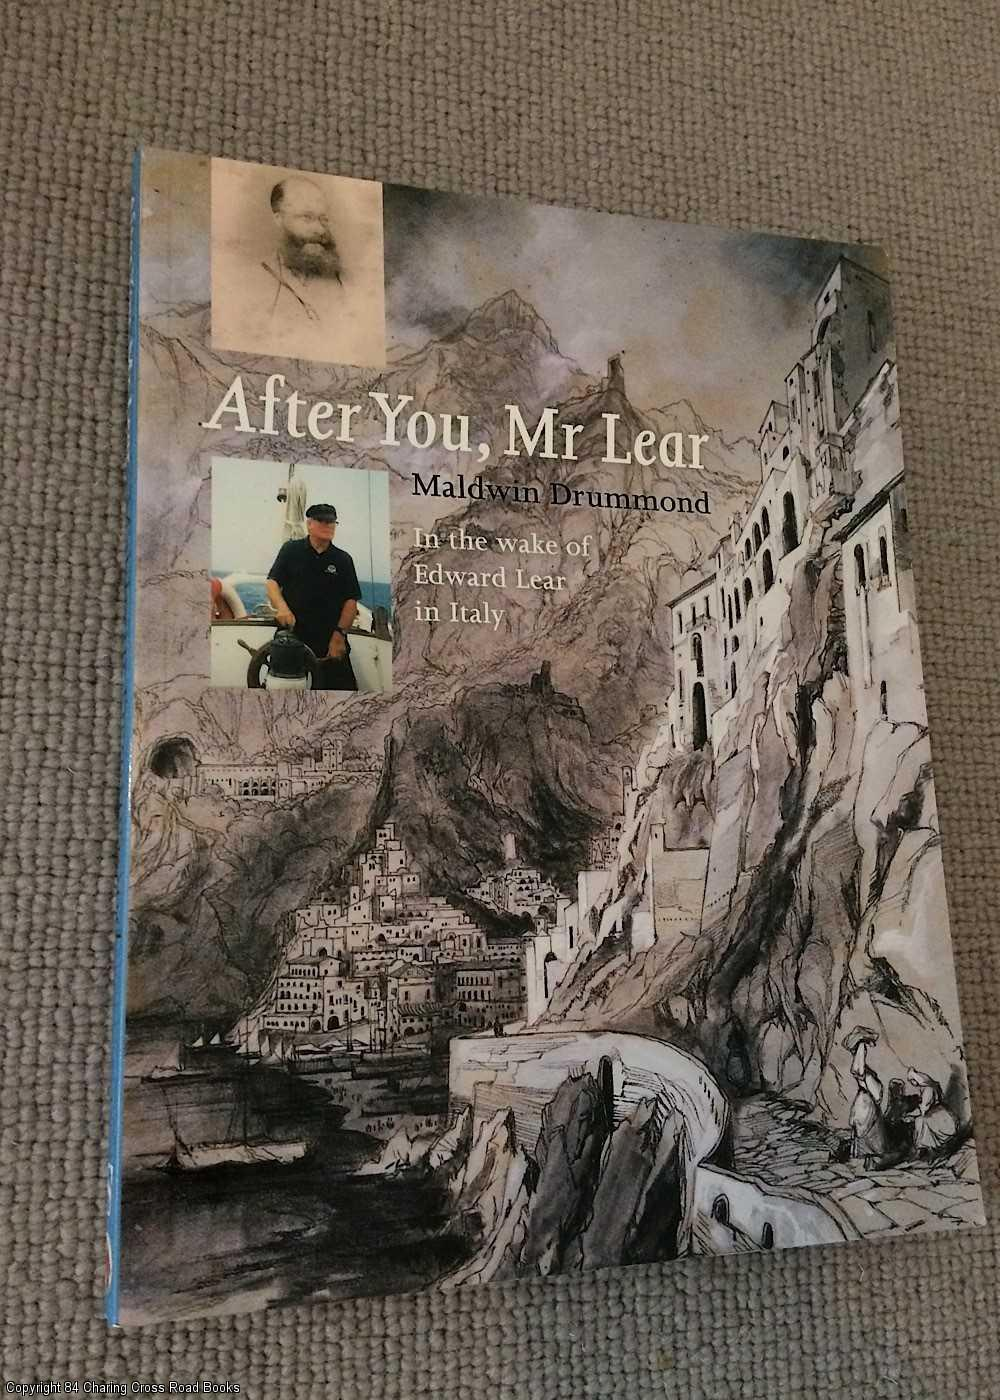 DRUMMOND, MALDWIN - After You, Mr Lear: In the wake of Edward Lear in Italy